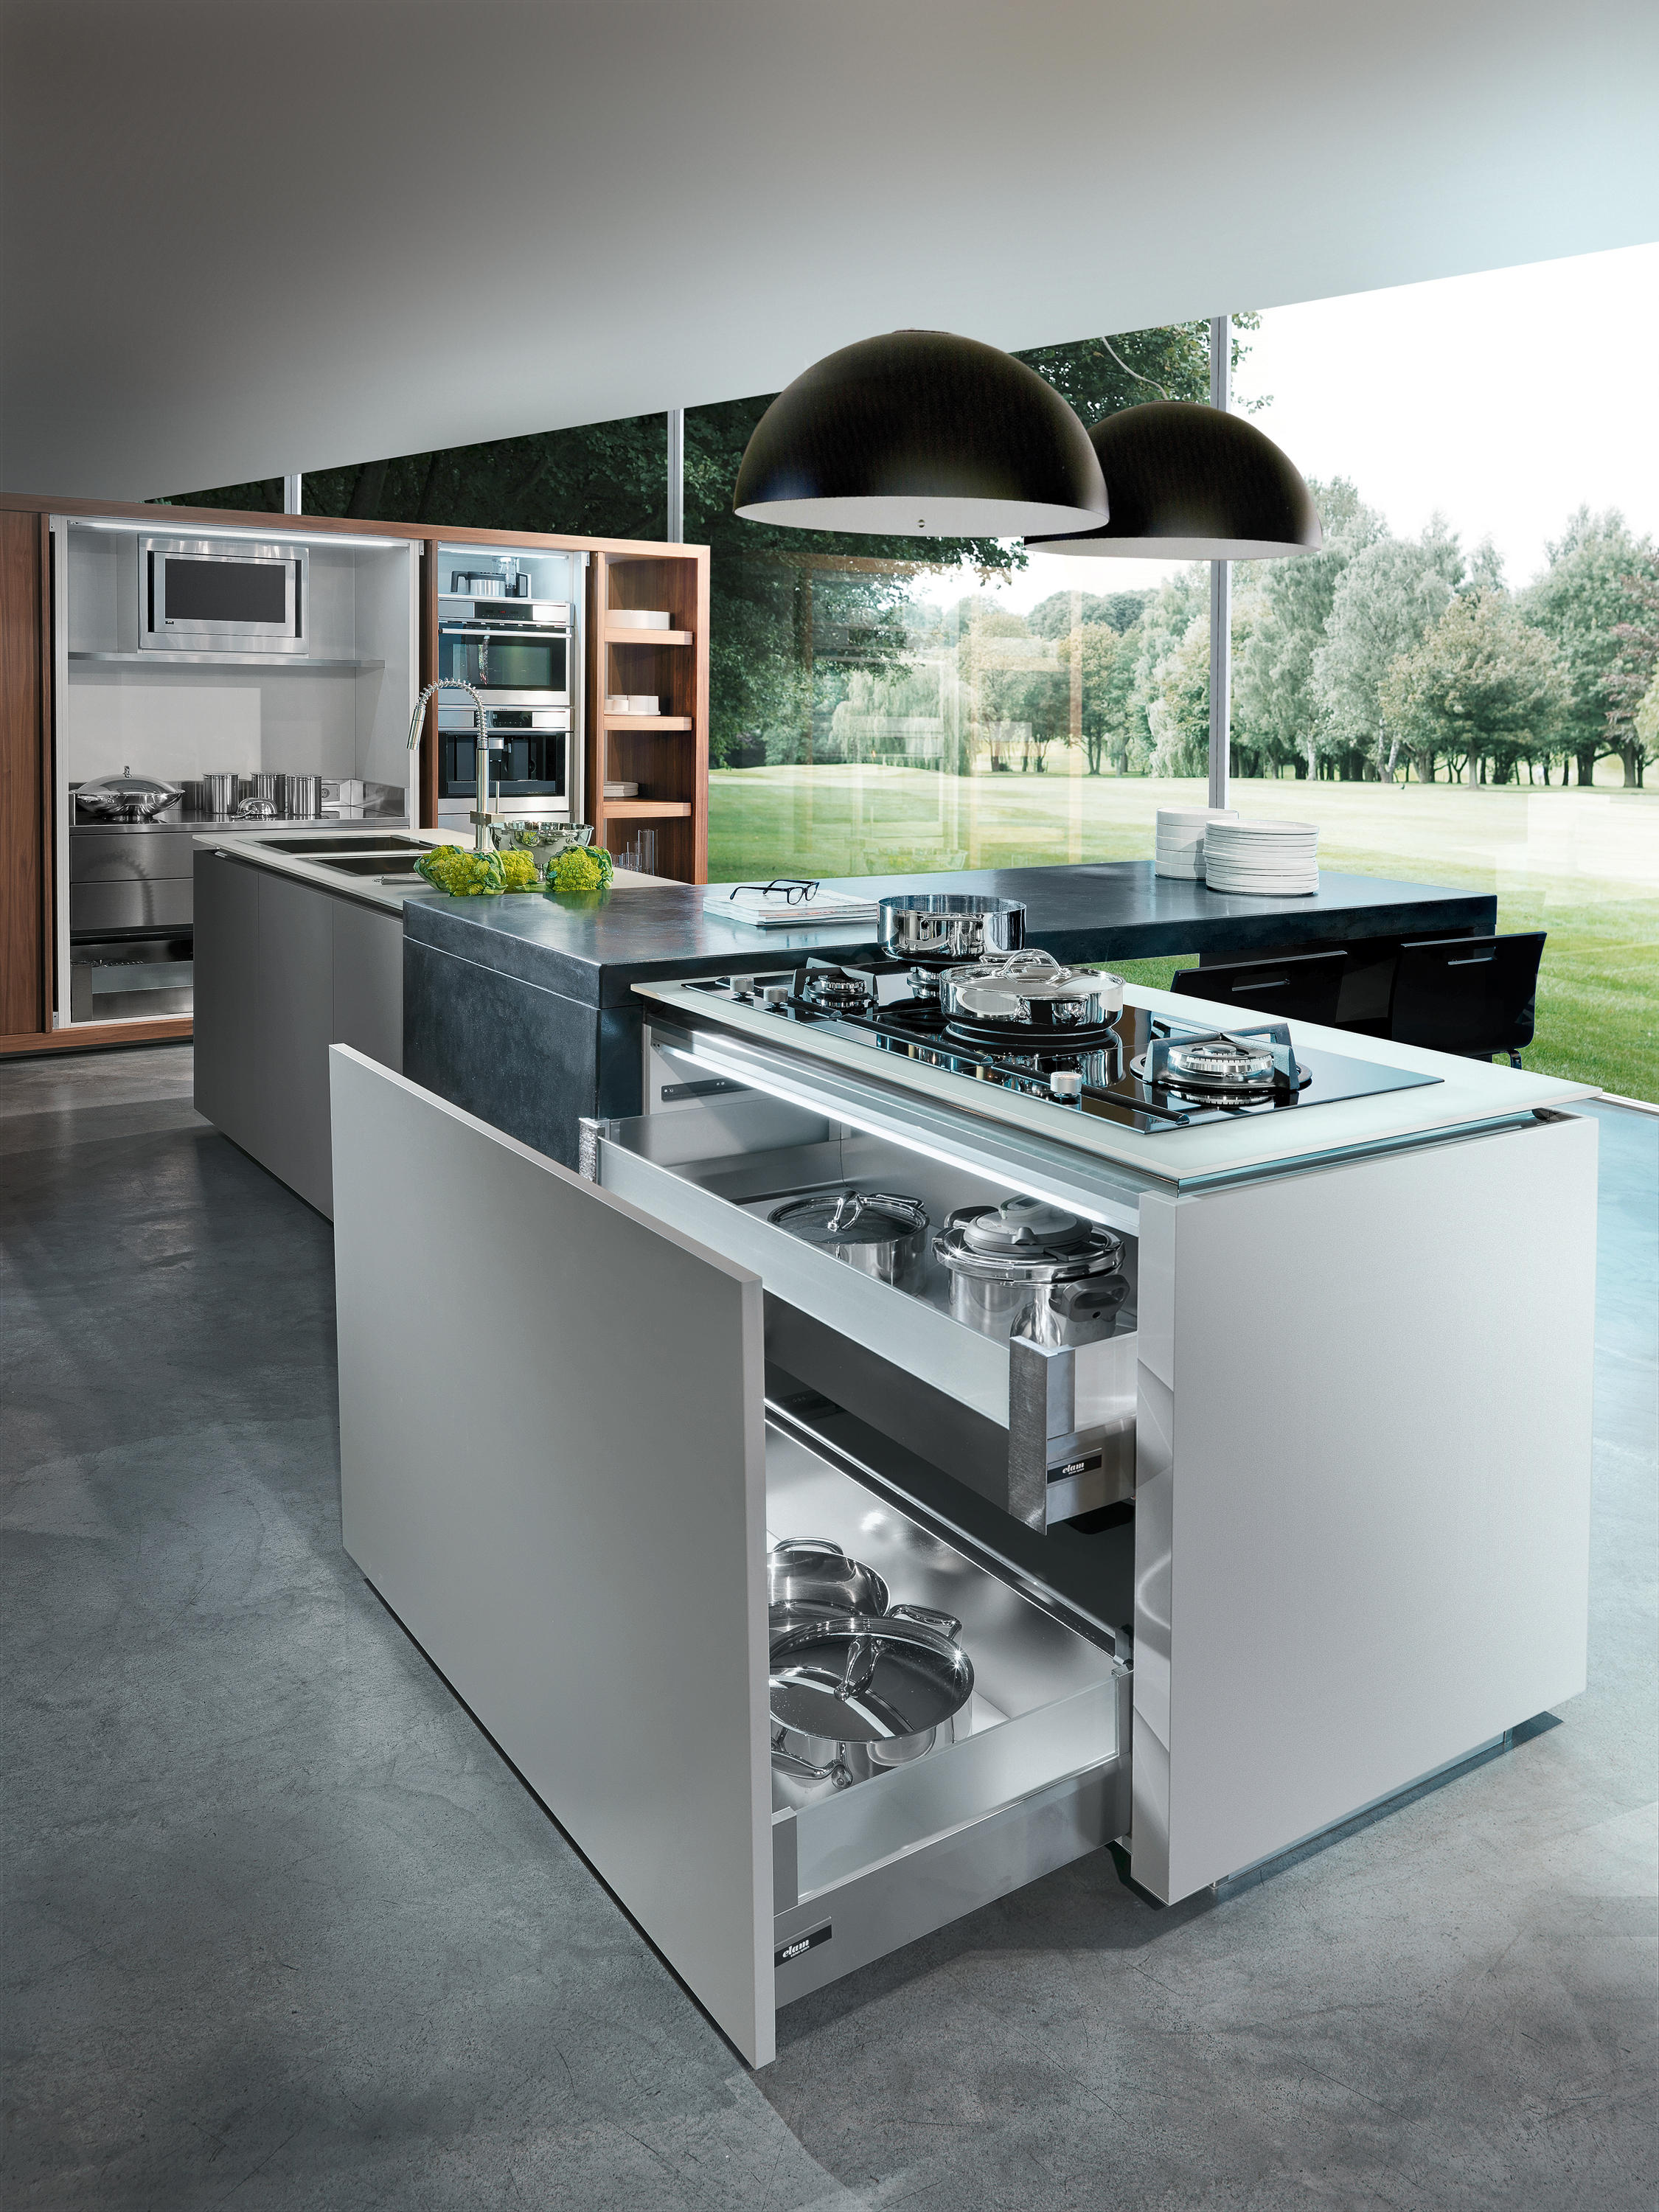 Plus island kitchens from tisettanta architonic for Cucine tisettanta